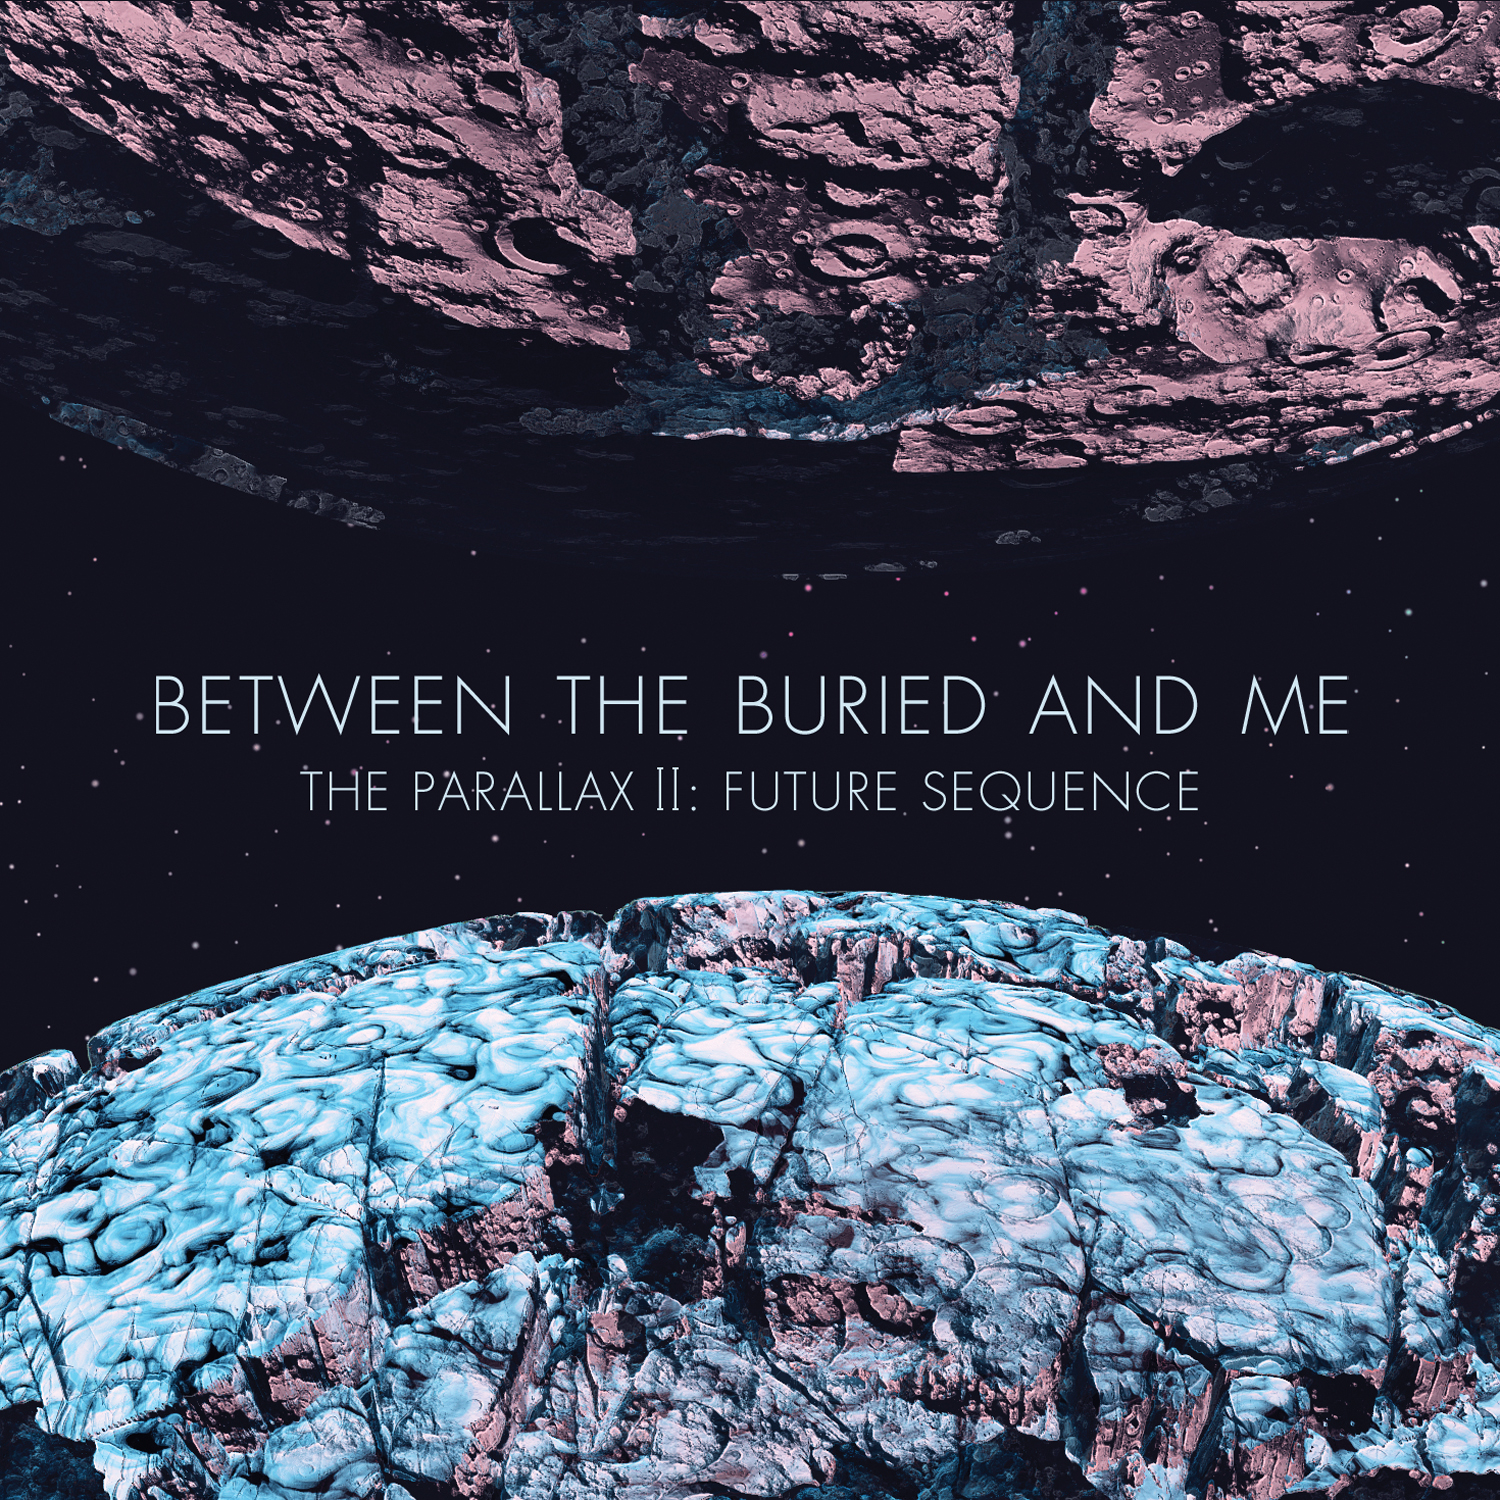 Between The Buried And Me – The Parallax II: Future Sequence Review